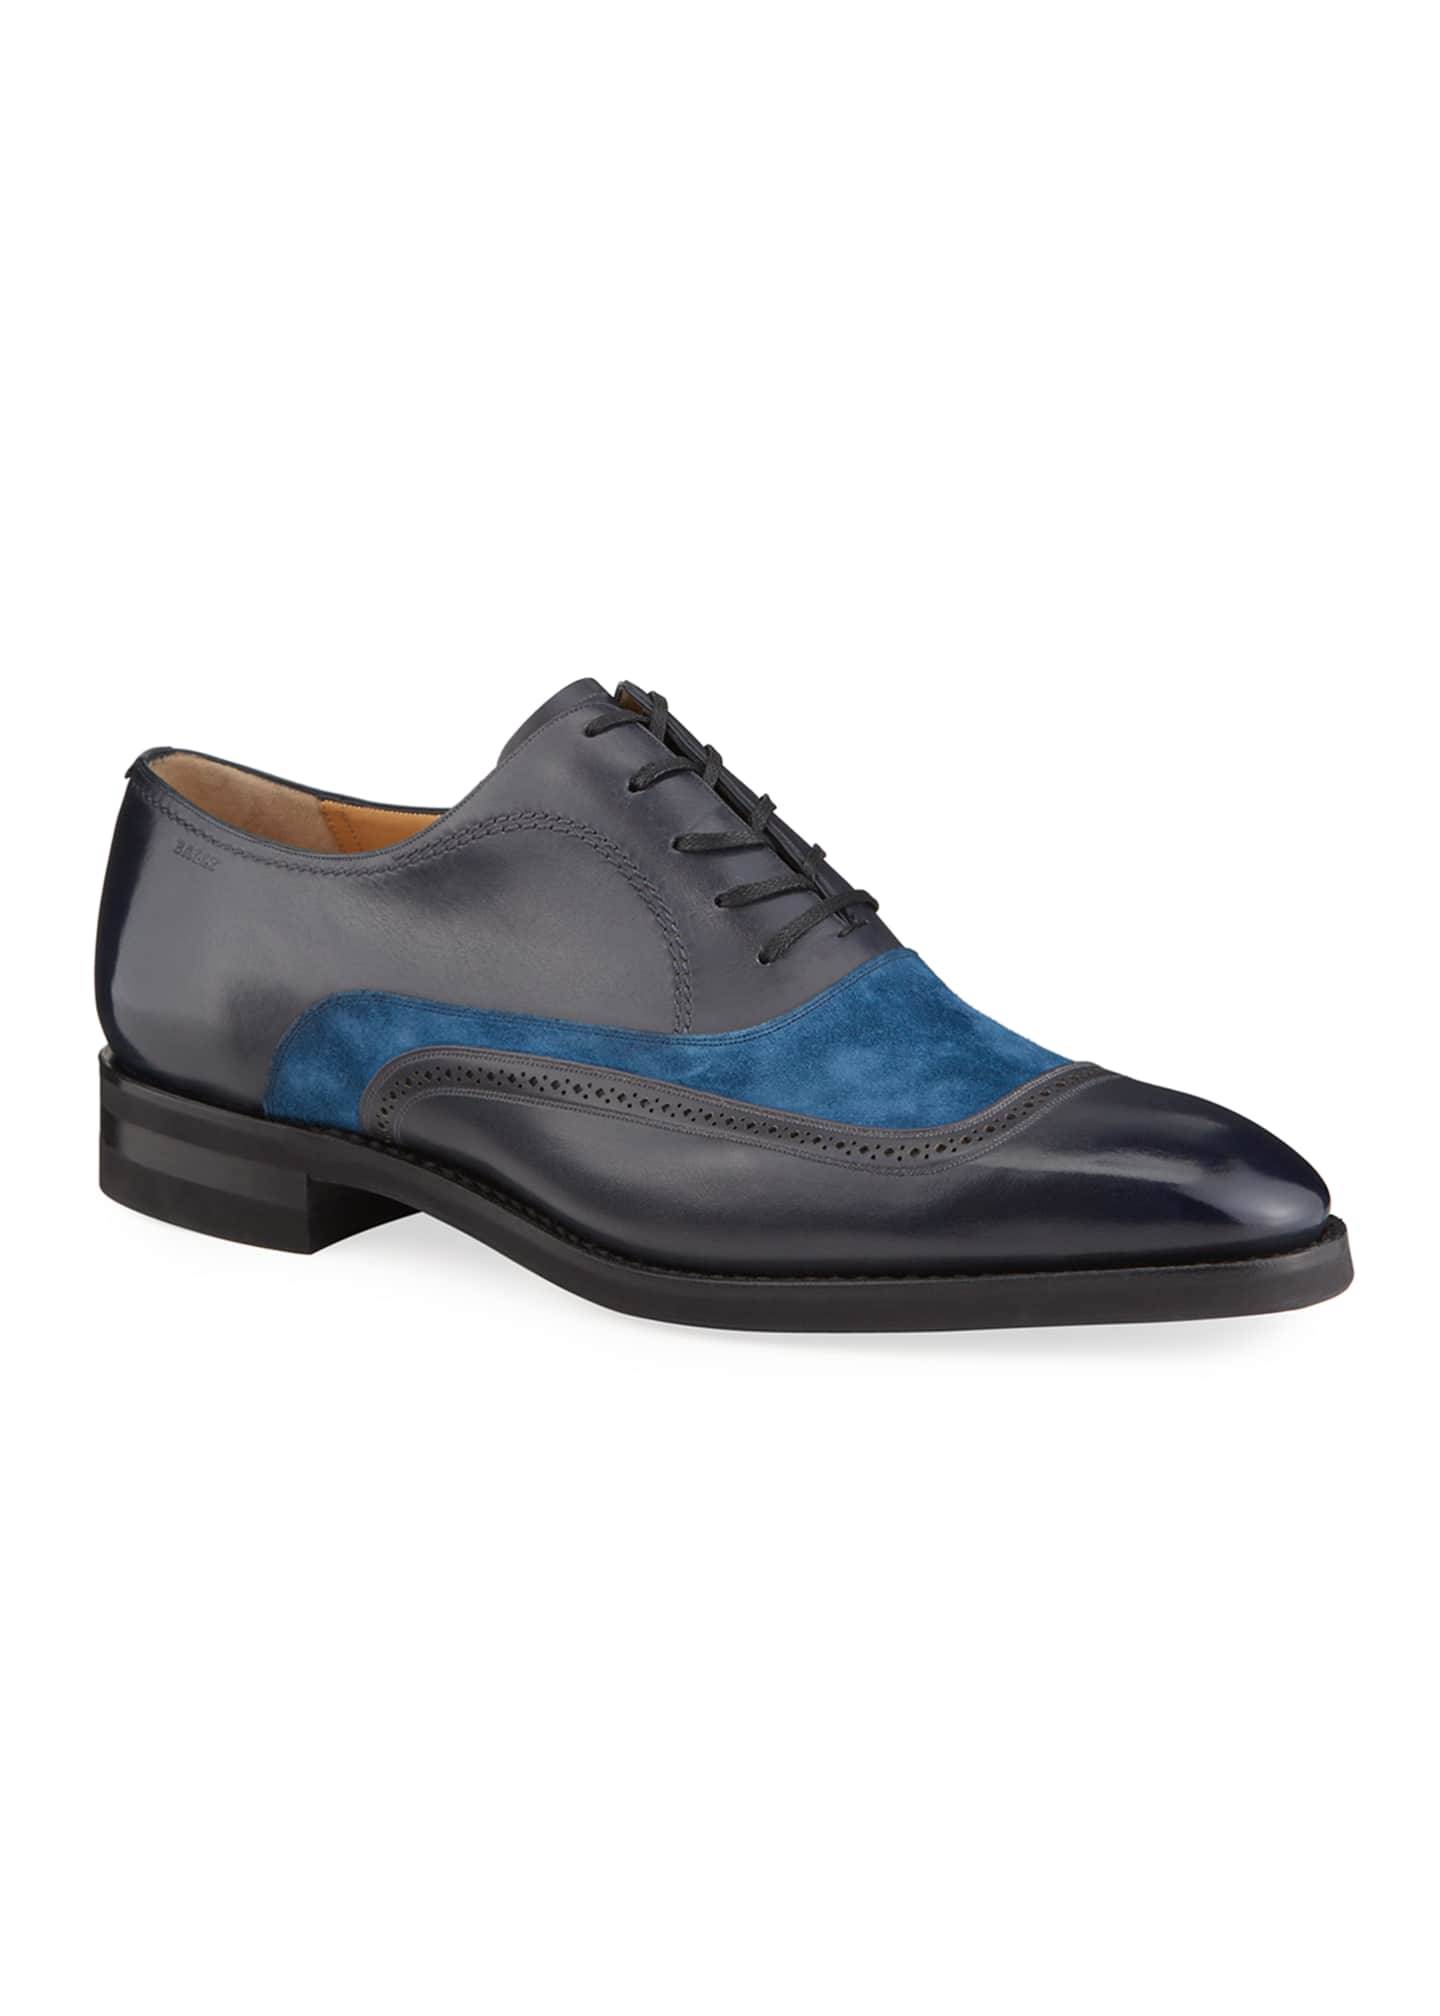 Image 2 of 4: Men's Contrast-Suede Leather Dress Shoes